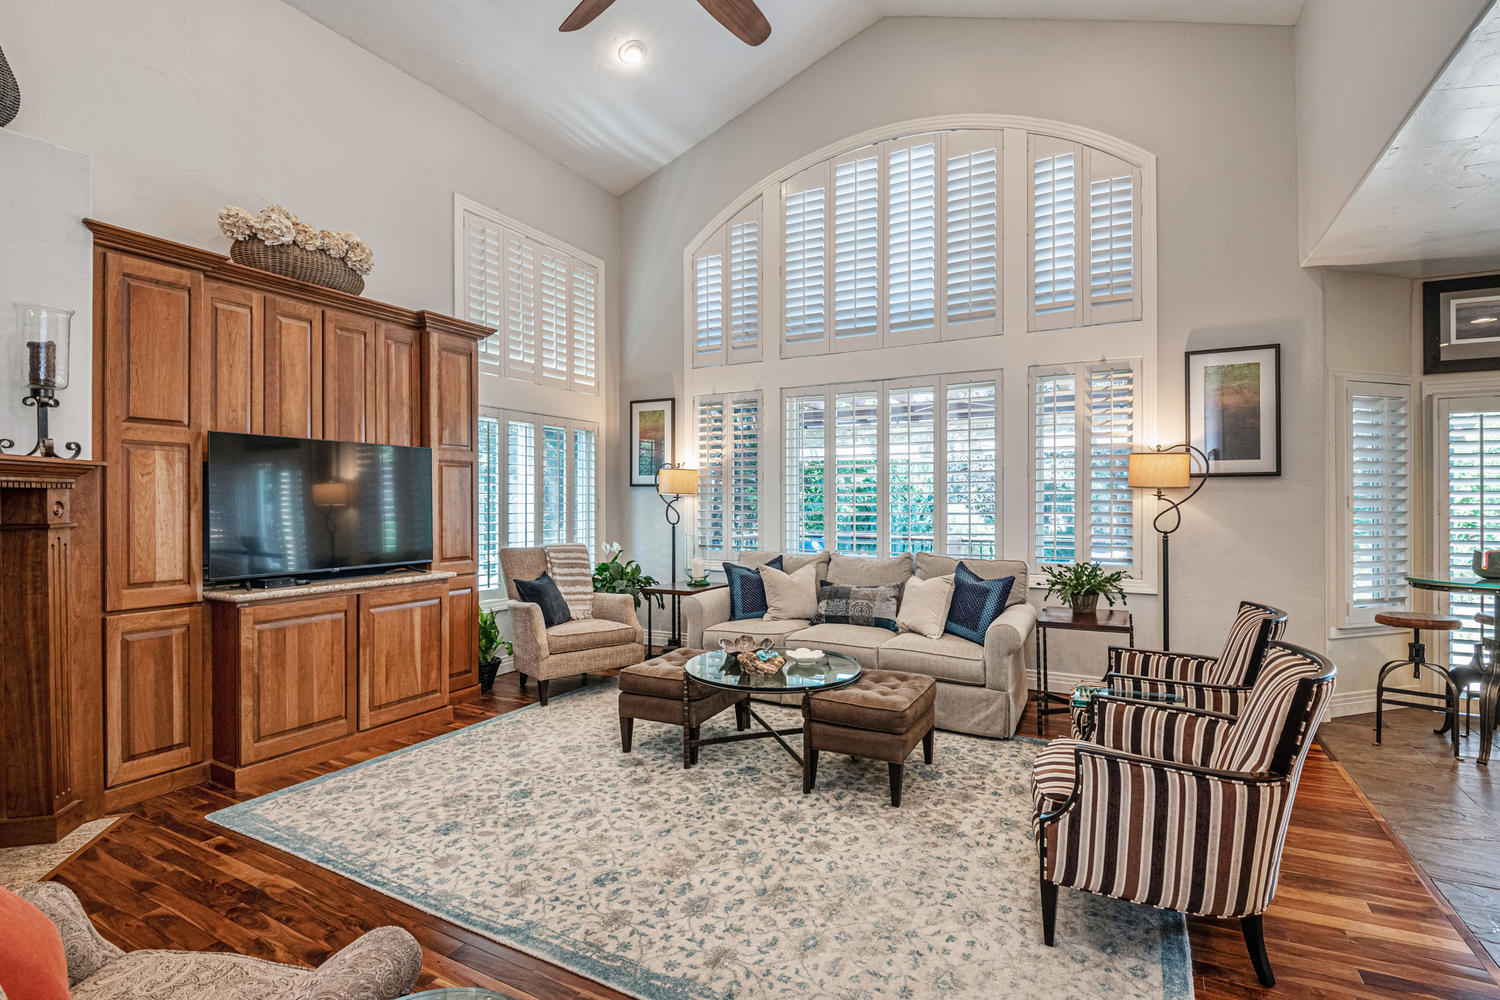 Vaulted Ceiling Adds to Elegant Open Feeling